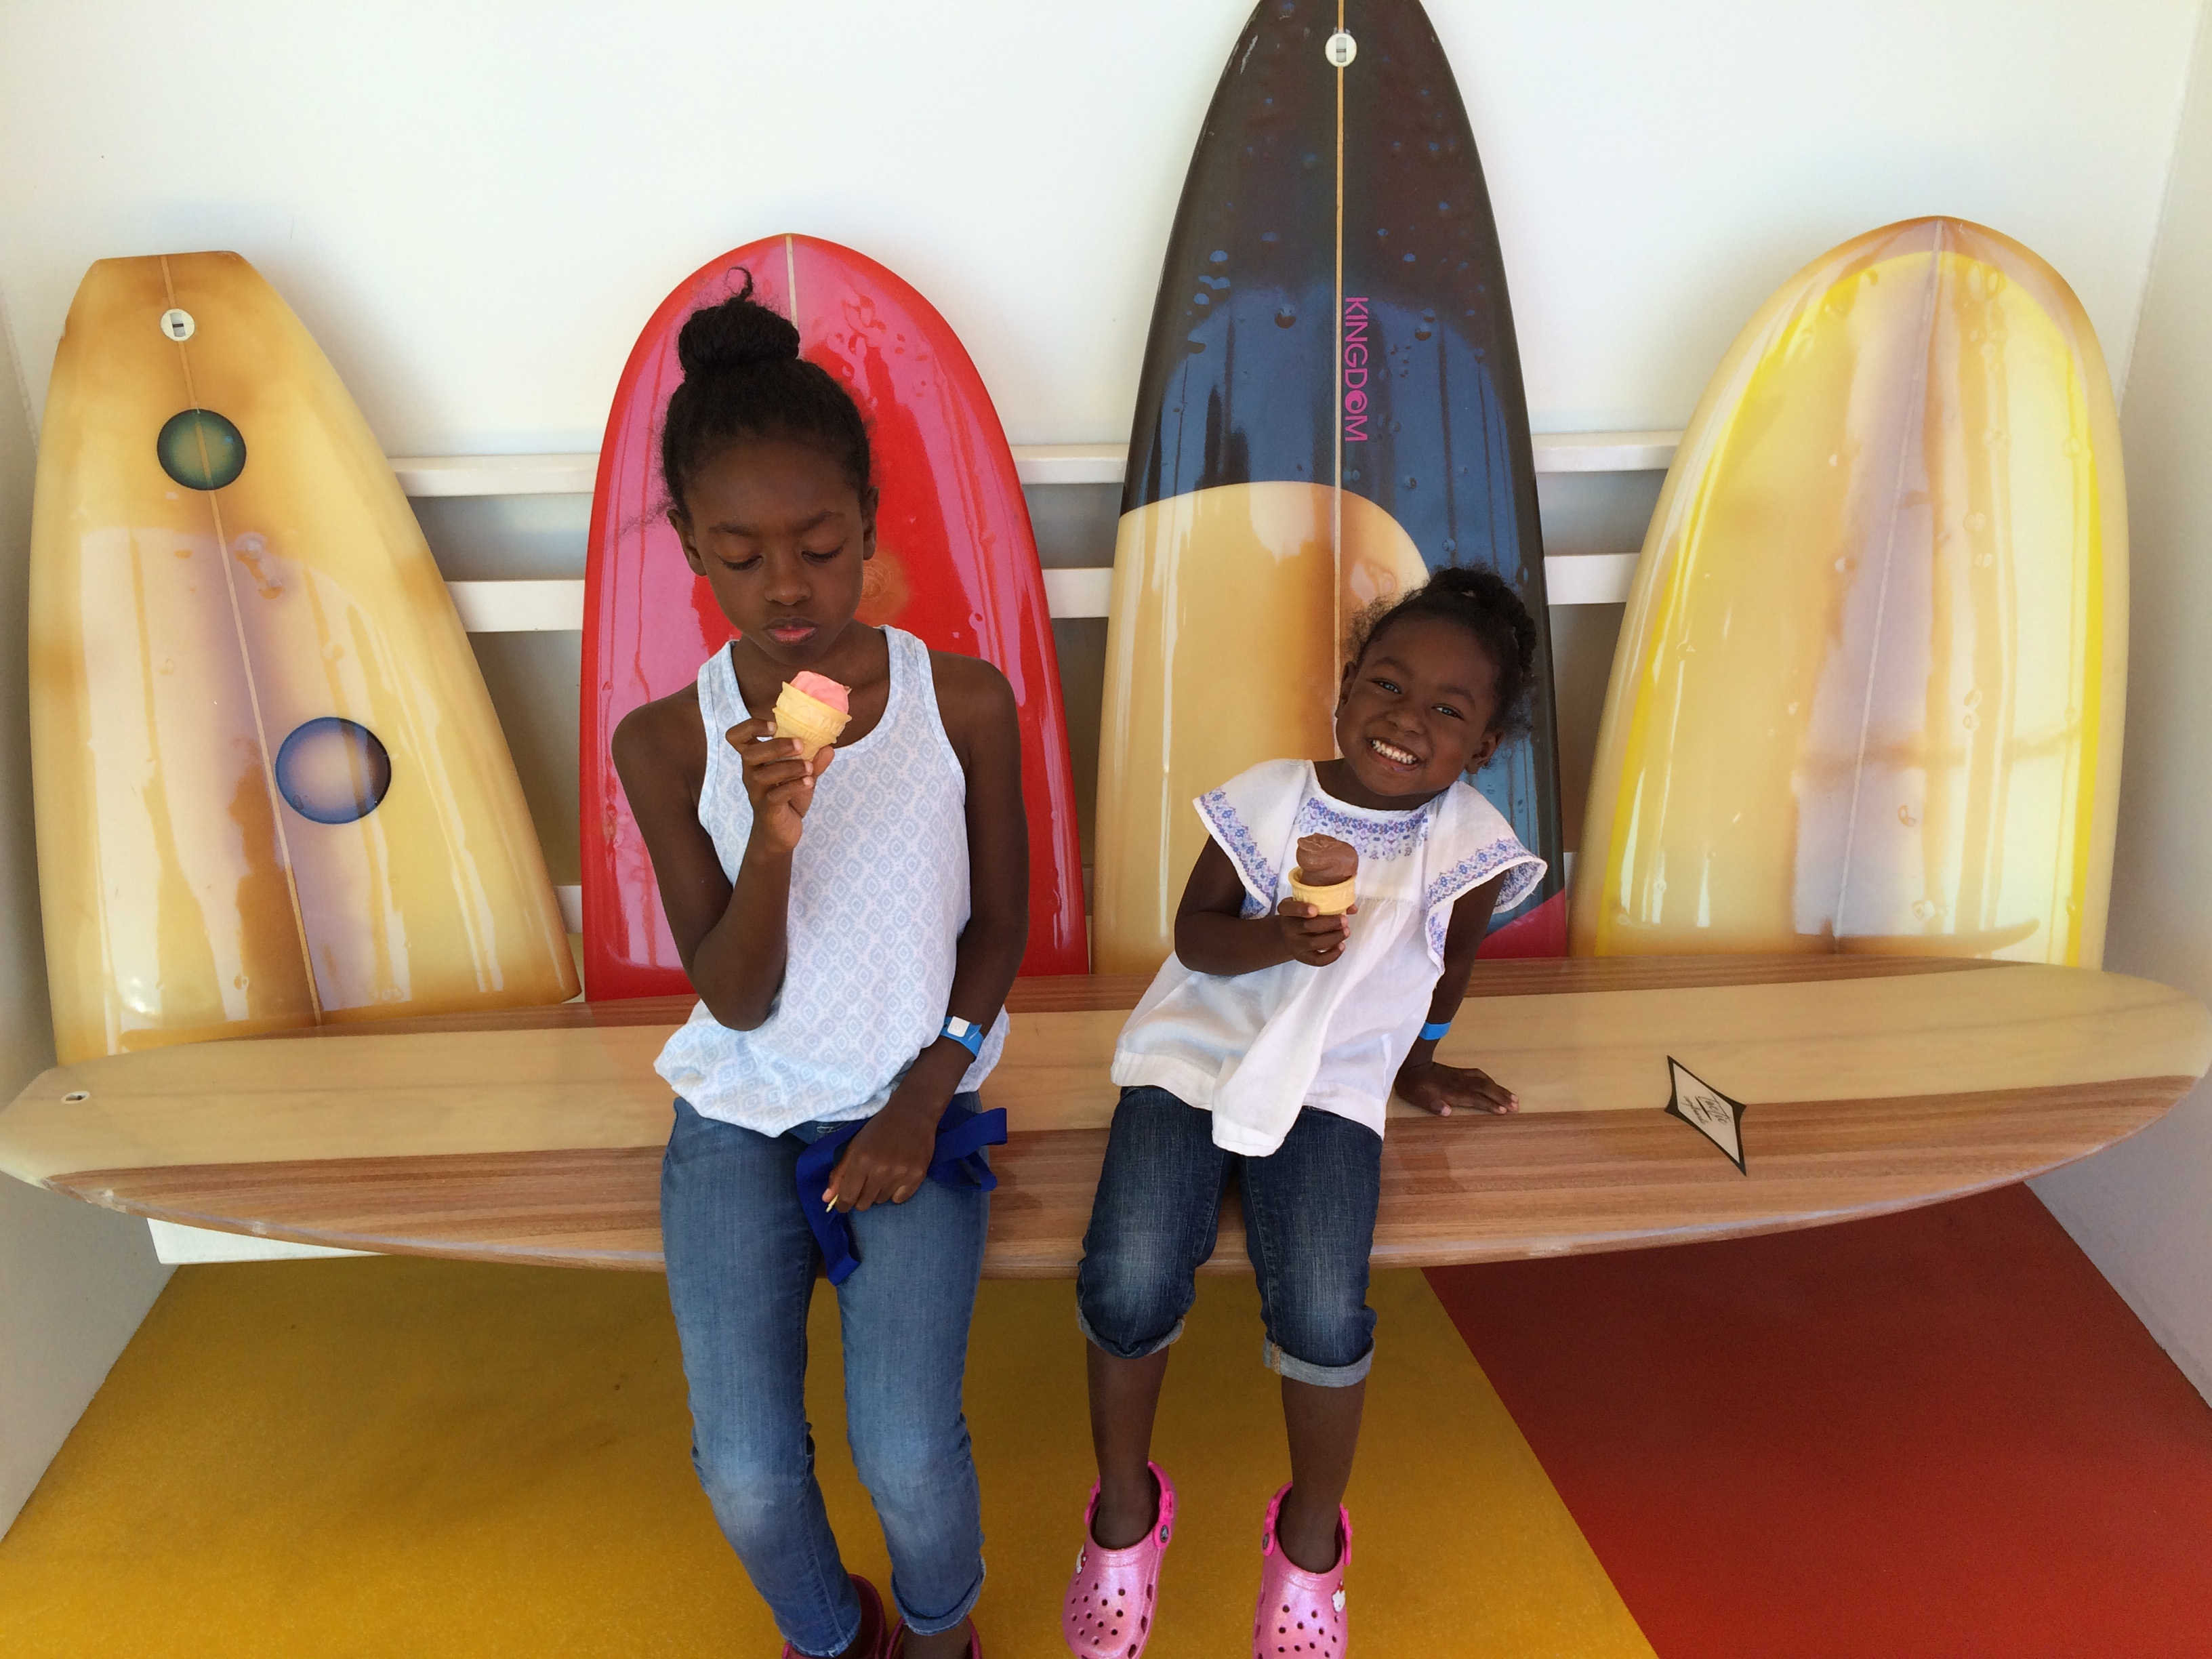 AREN'T THESE SURFBOARD BENCHES ADORABLE?